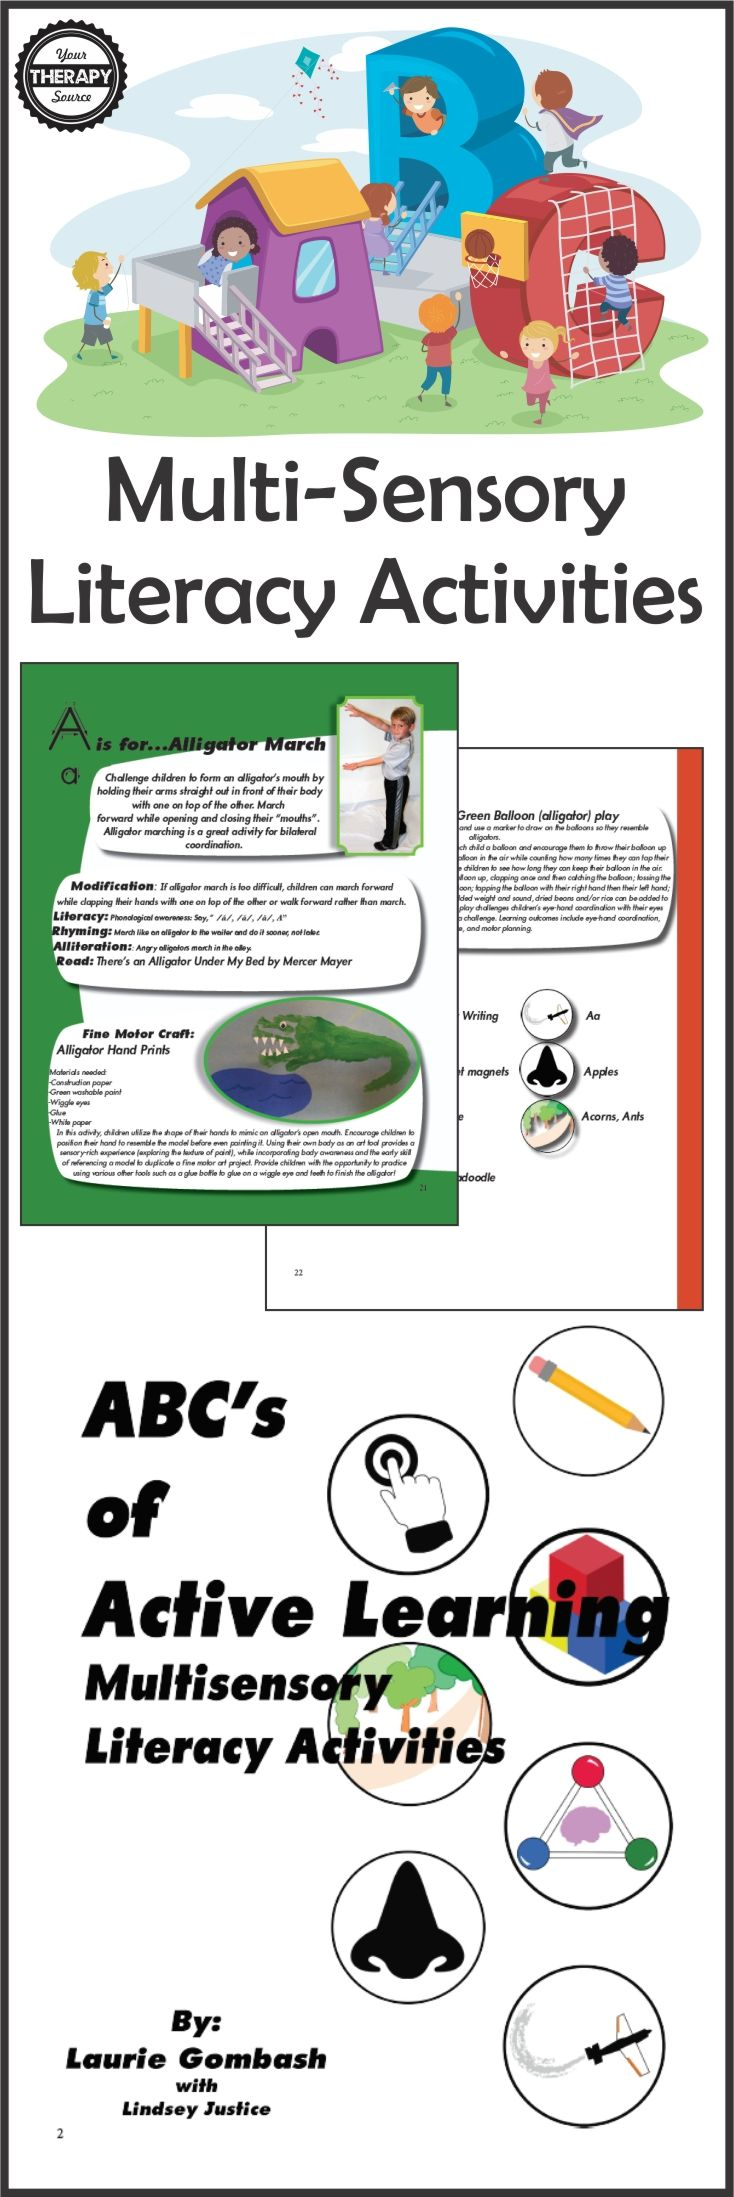 Multisensory Active Learning - Here is a great FREE printable to get kids learning the letter A through a multi-sensory, embodied cognition approach.